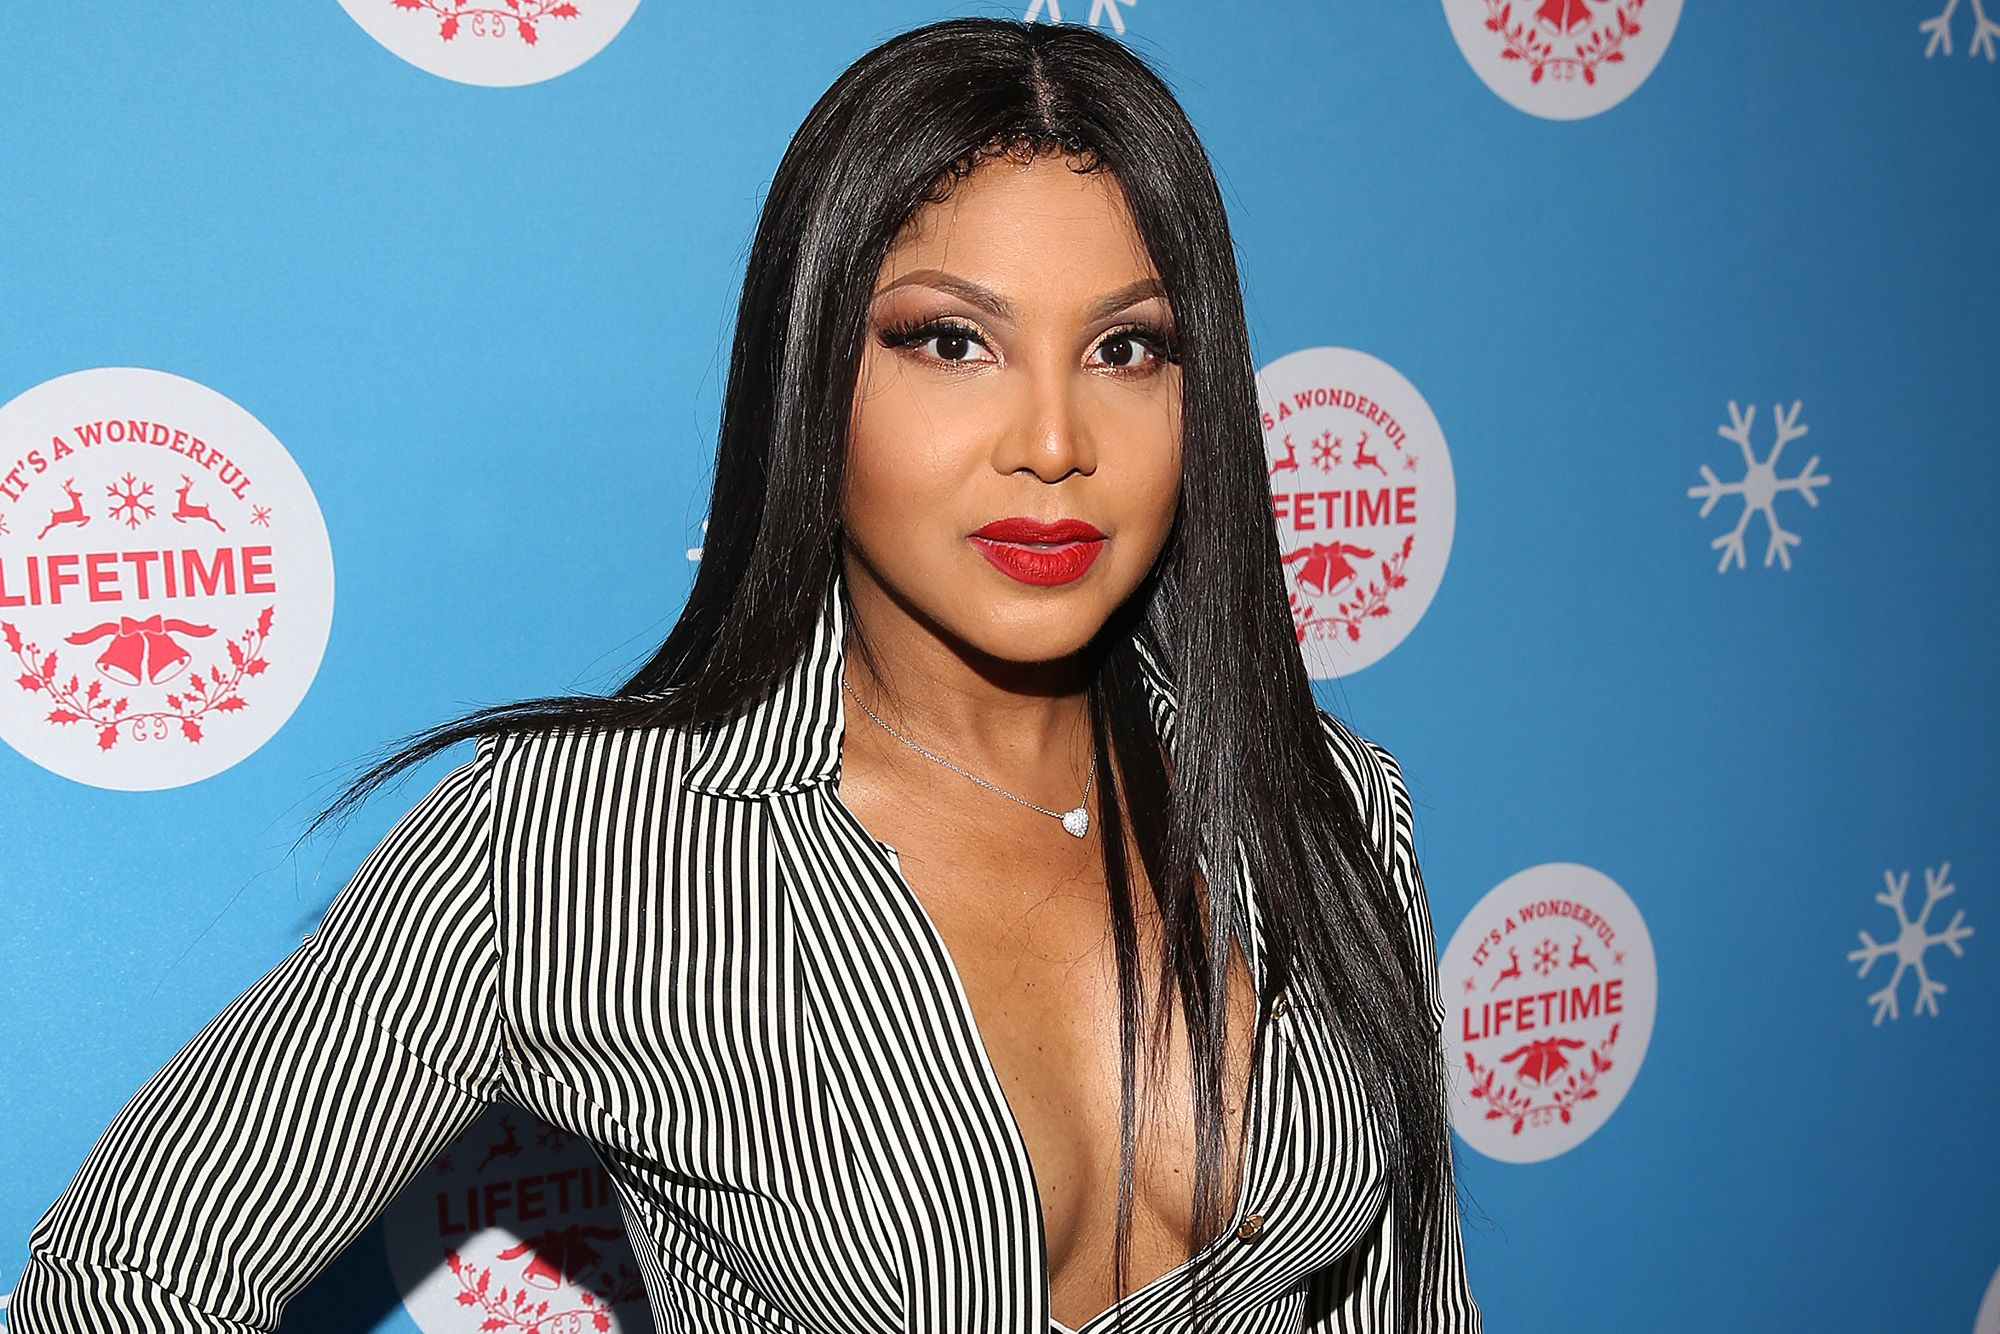 toni-braxton-is-having-the-time-of-her-life-on-a-boat-trip-check-out-her-video